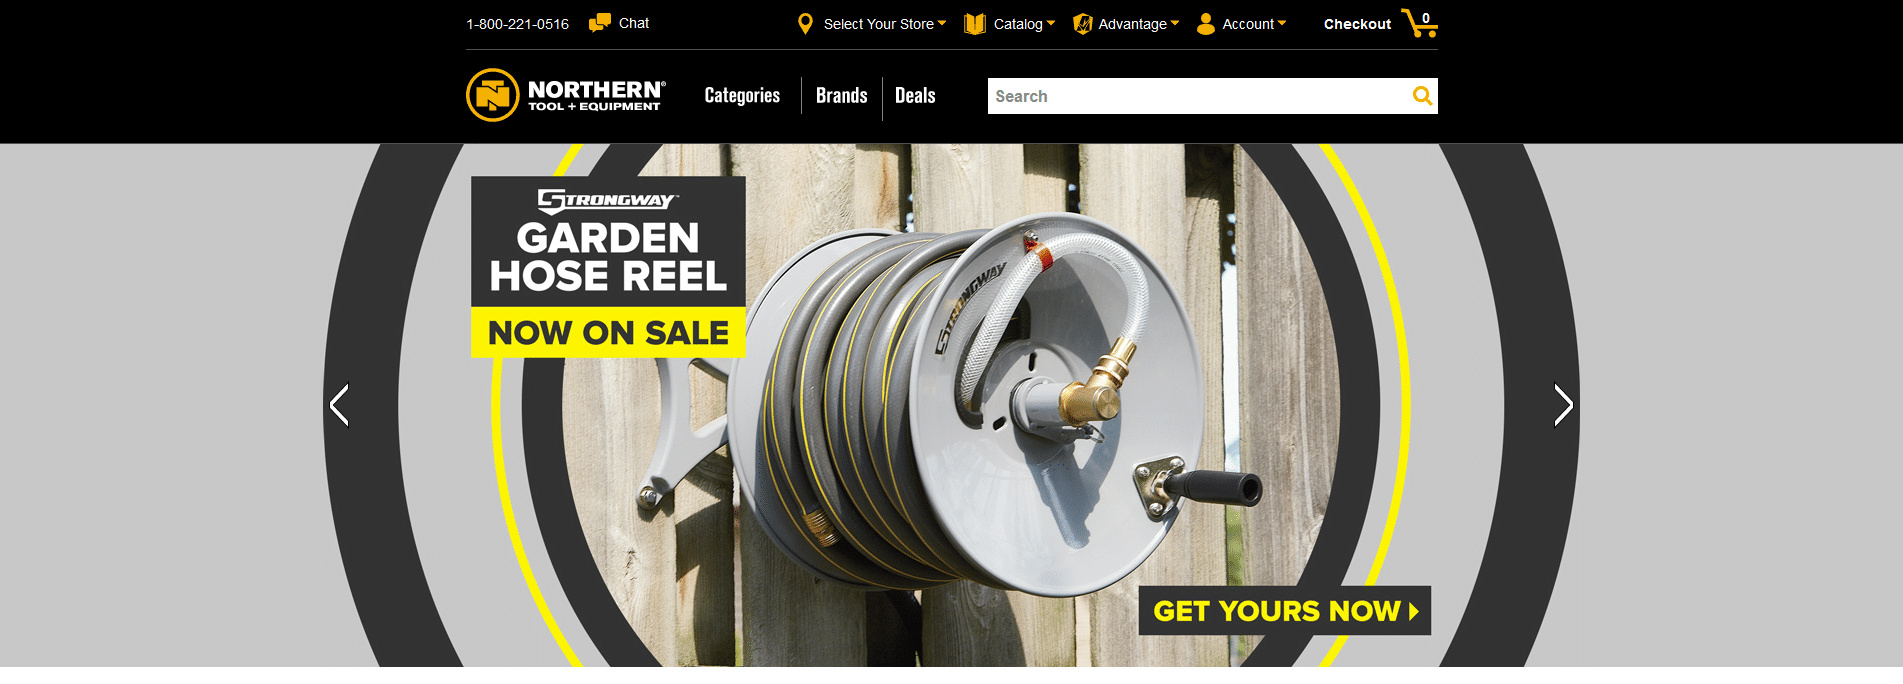 Northern Tool Coupons 50 Off 250 10 Off 100 Off Coupon 2020 December